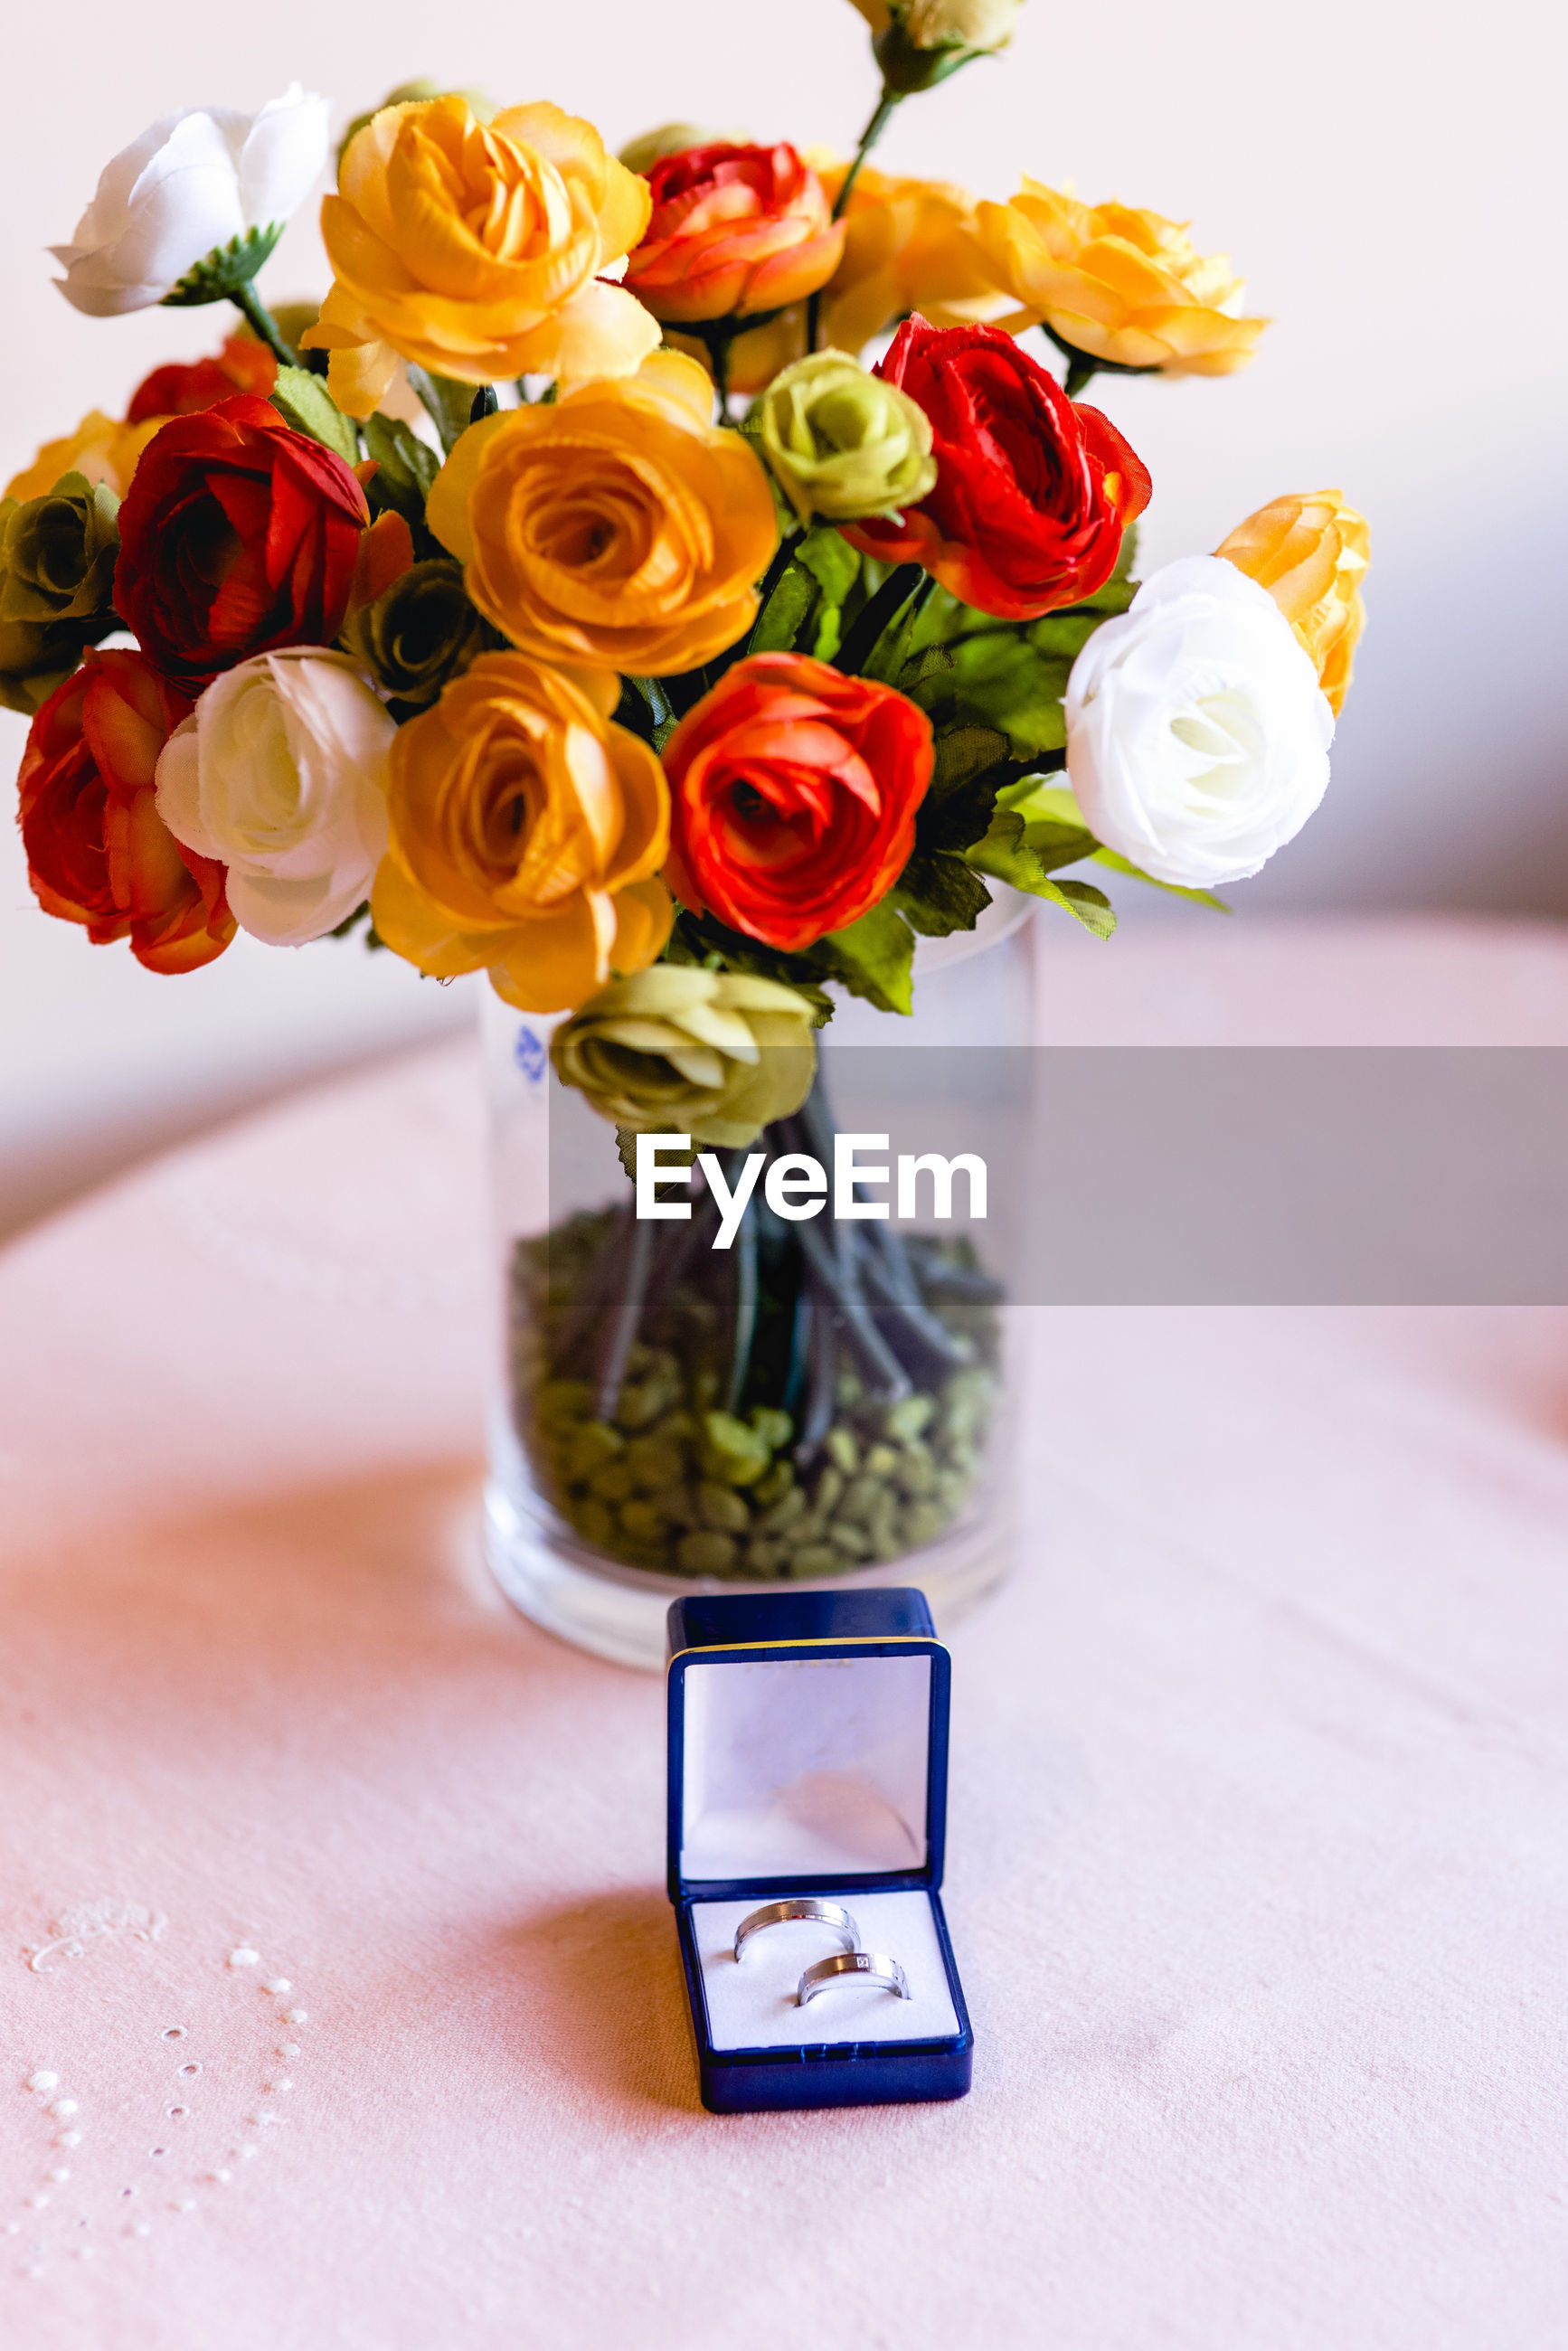 Close-up of roses in vase on table